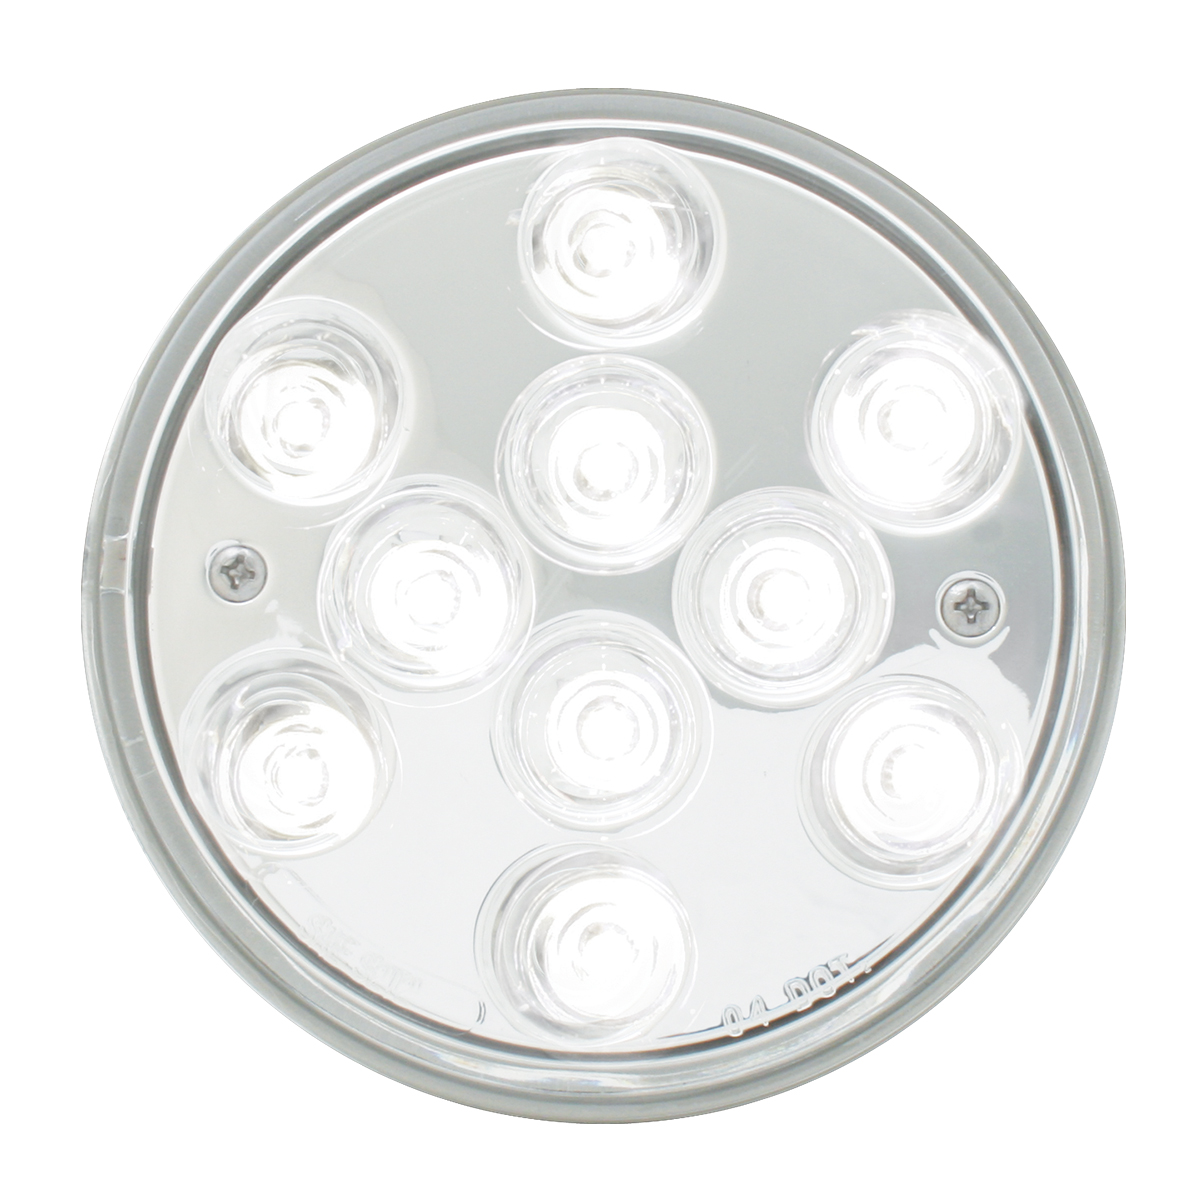 "77458 4"" Mega 10 Plus LED Light in White/Clear"